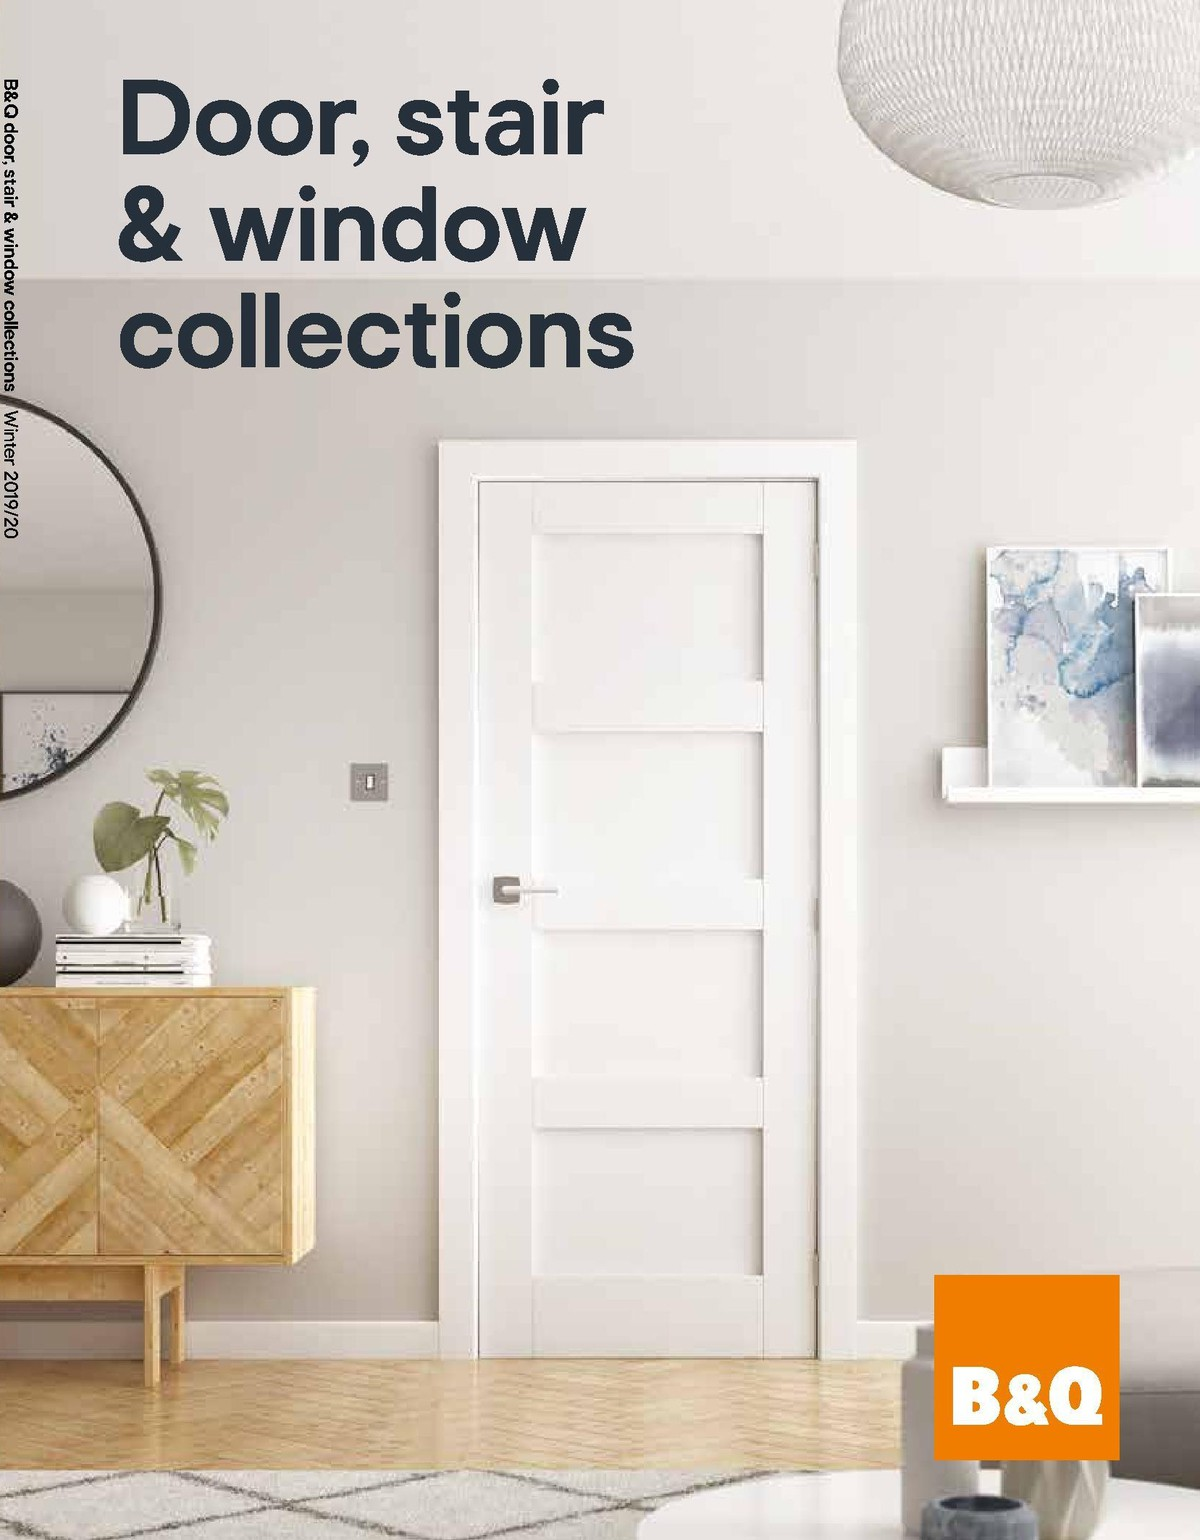 B&Q Door, Stair & Window Collections Offers from December 1